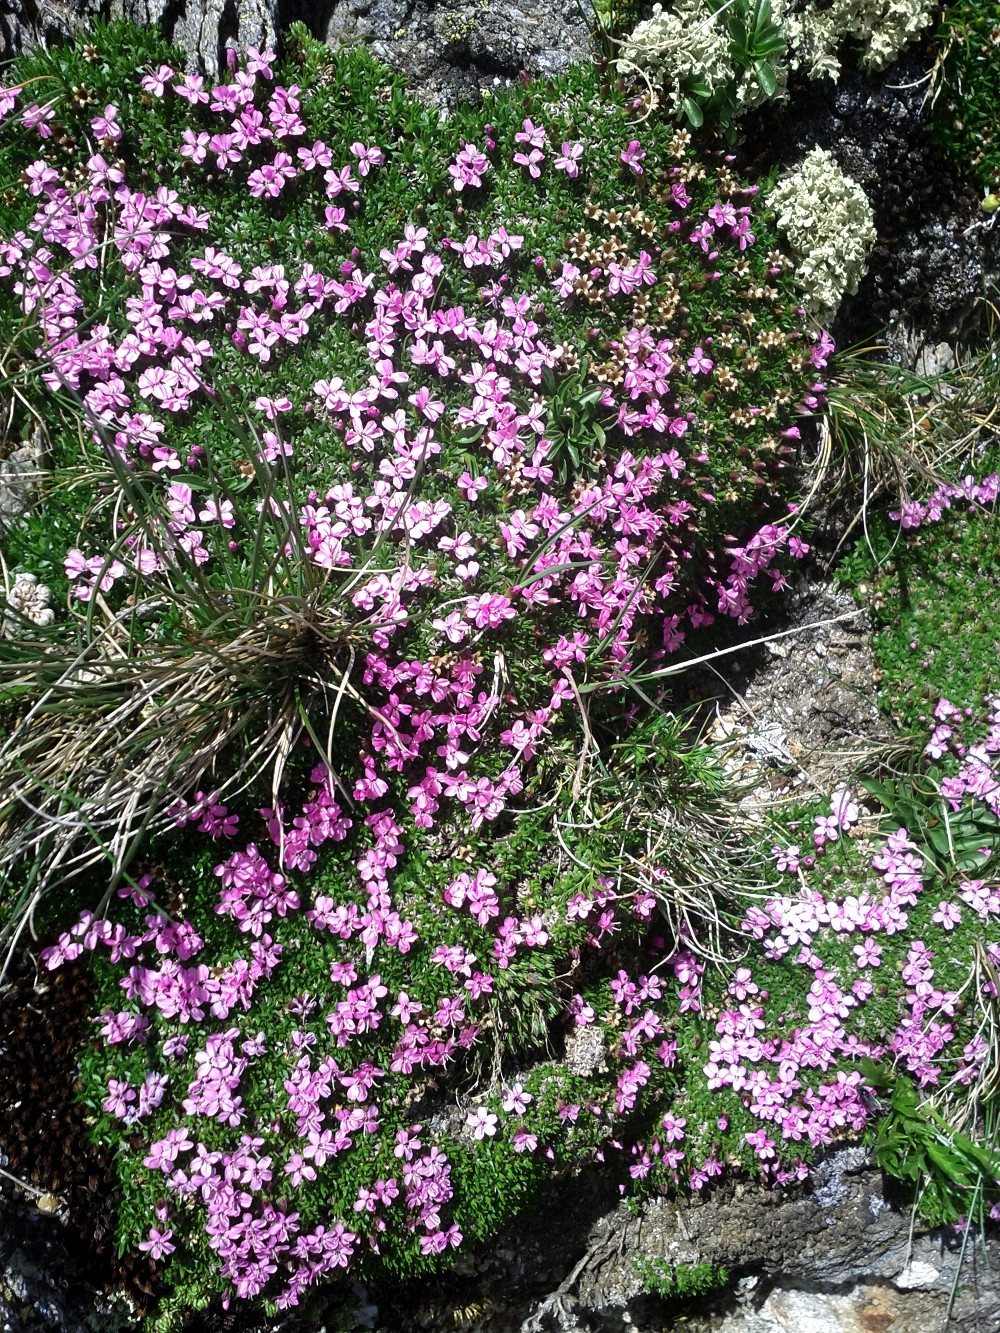 Pink alpine flowers at Birnlücken, Hohe Tauern